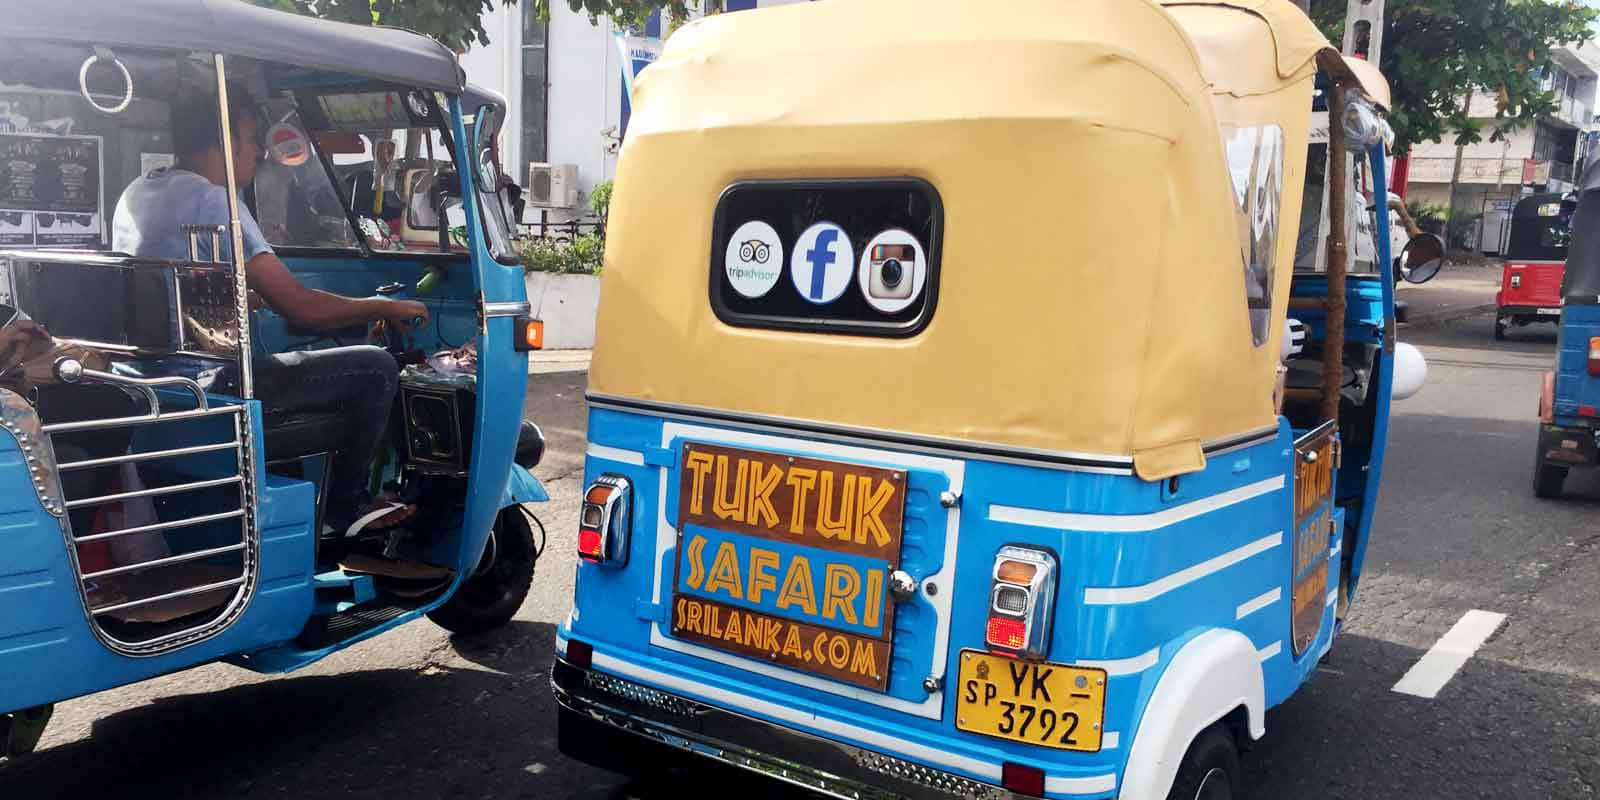 Don't forget about Colombo, the capital of Sri Lanka! See all this bustling city has to offer via a tuk tuk with Tuk Tuk Safari Sri Lanka.